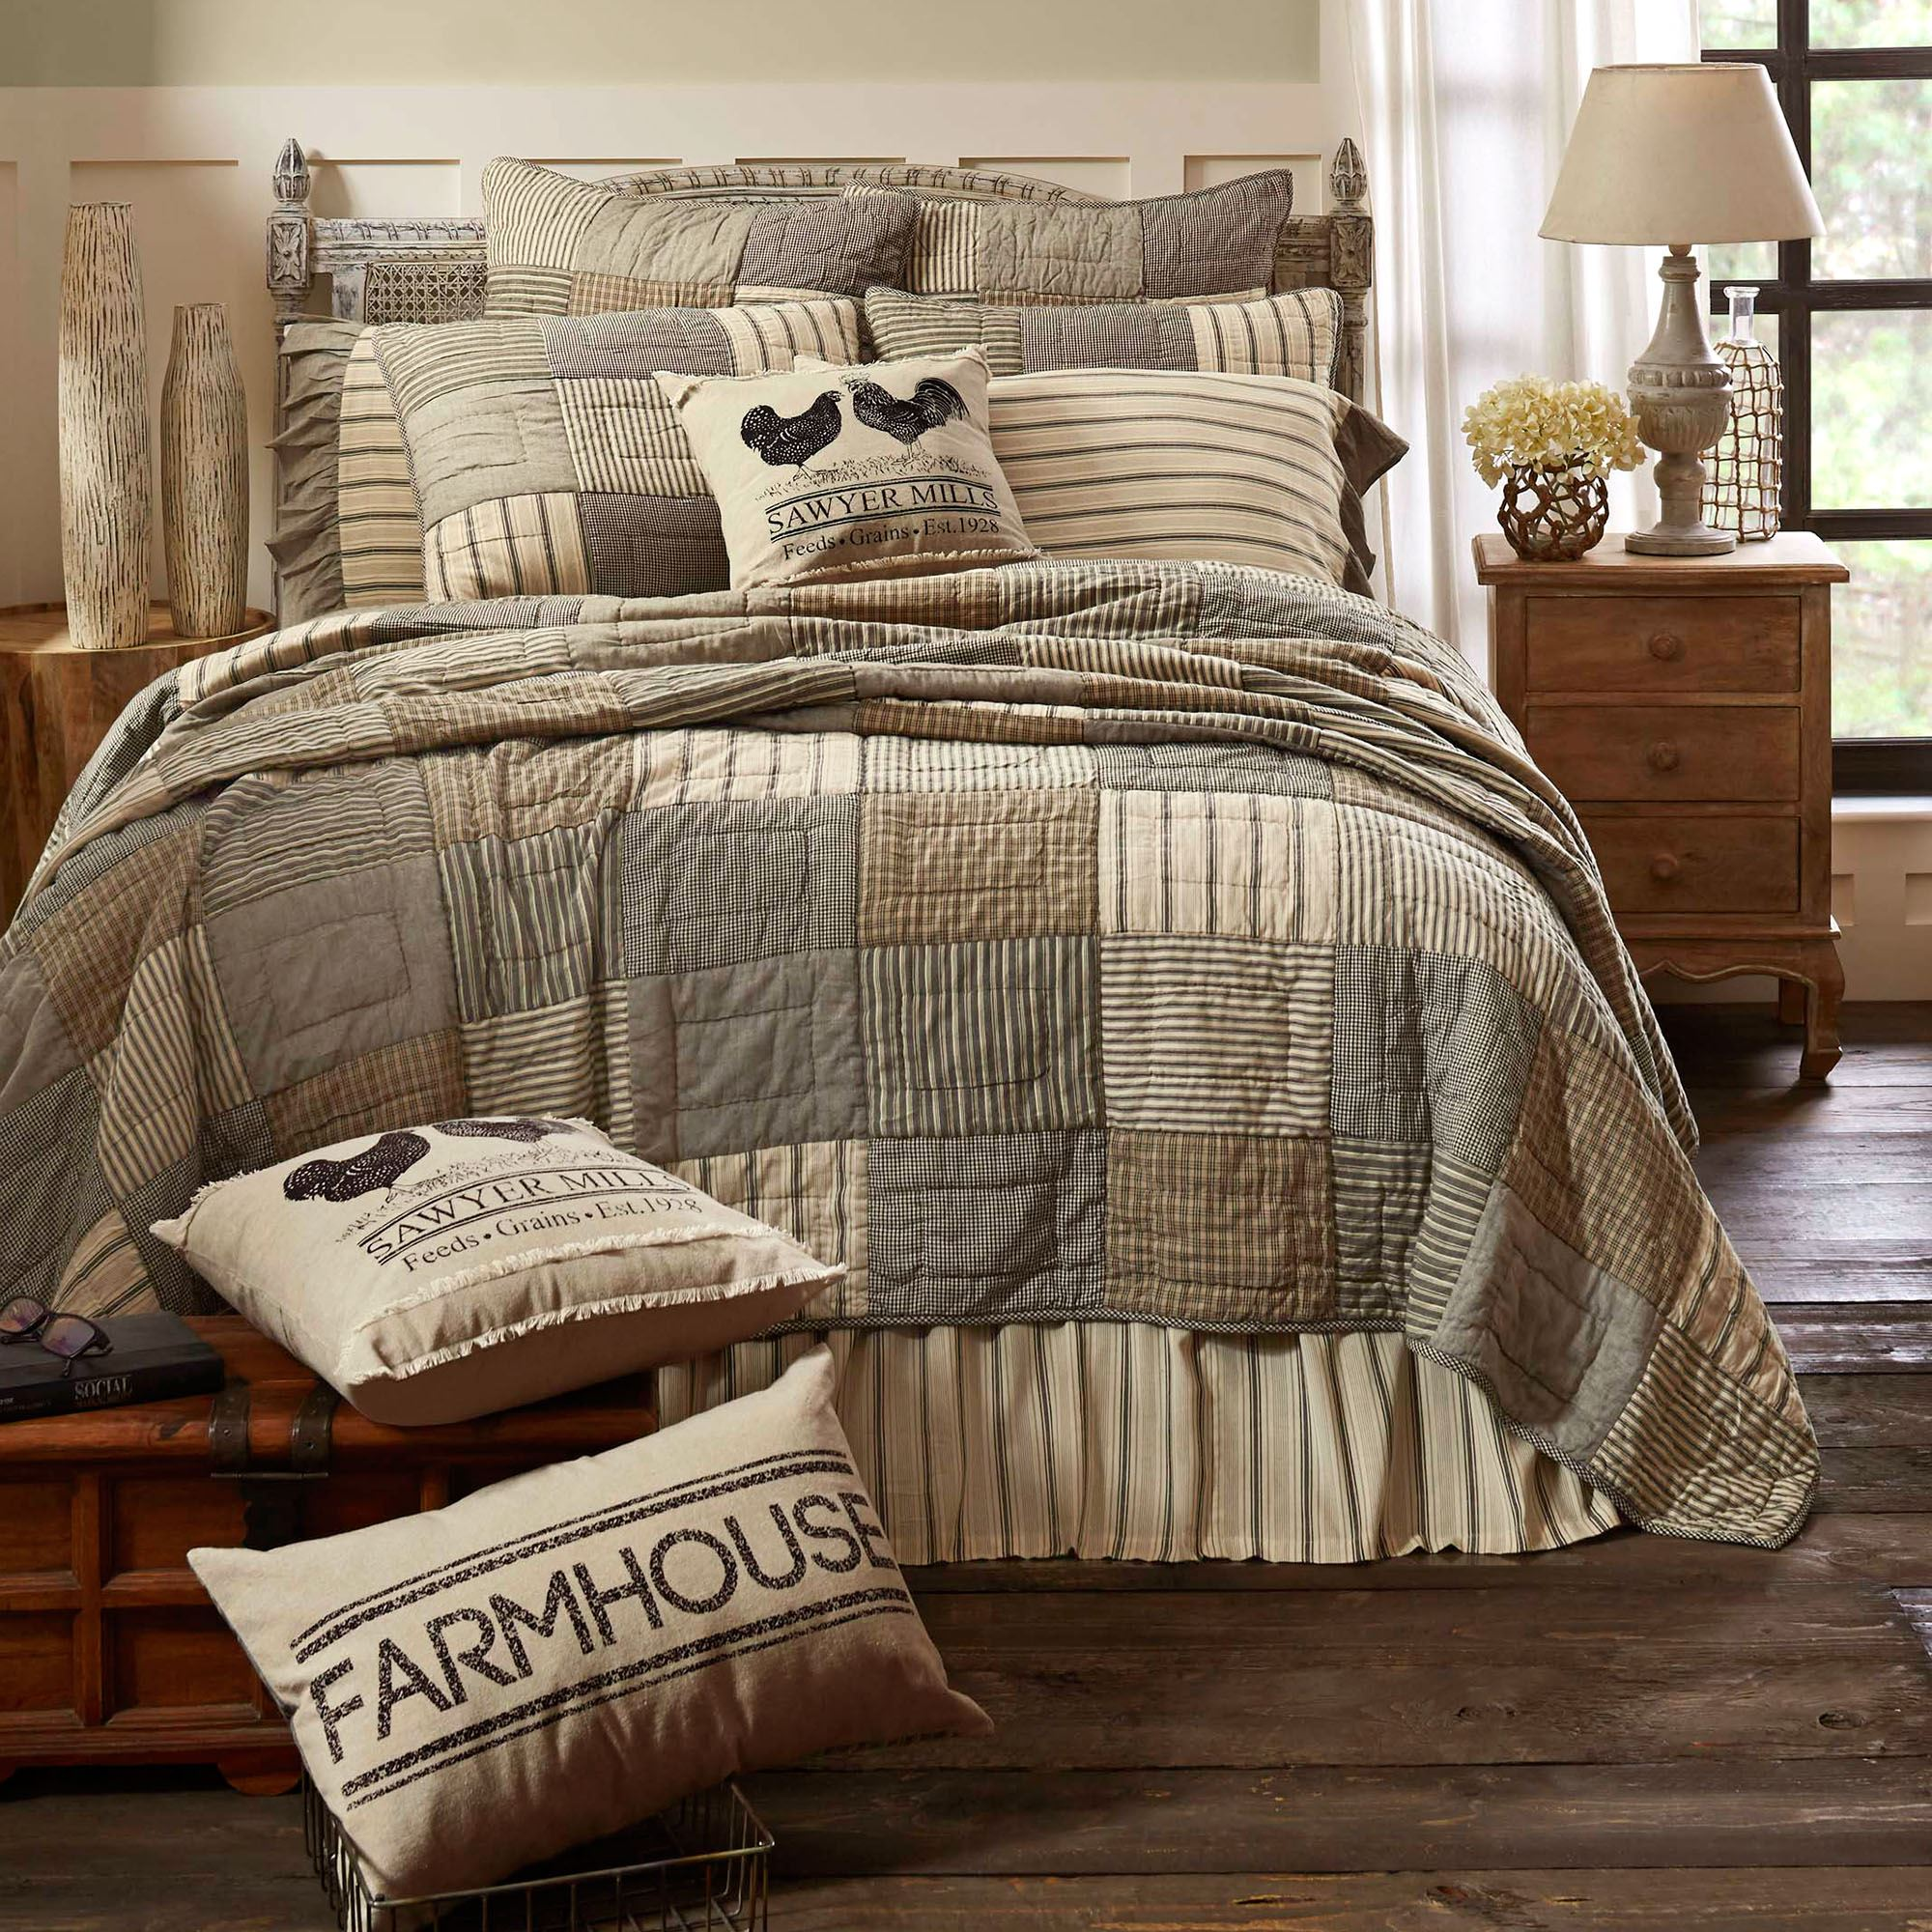 Sawyer Mill Farmhouse Style Patchwork Quilt Bedding By April Olive